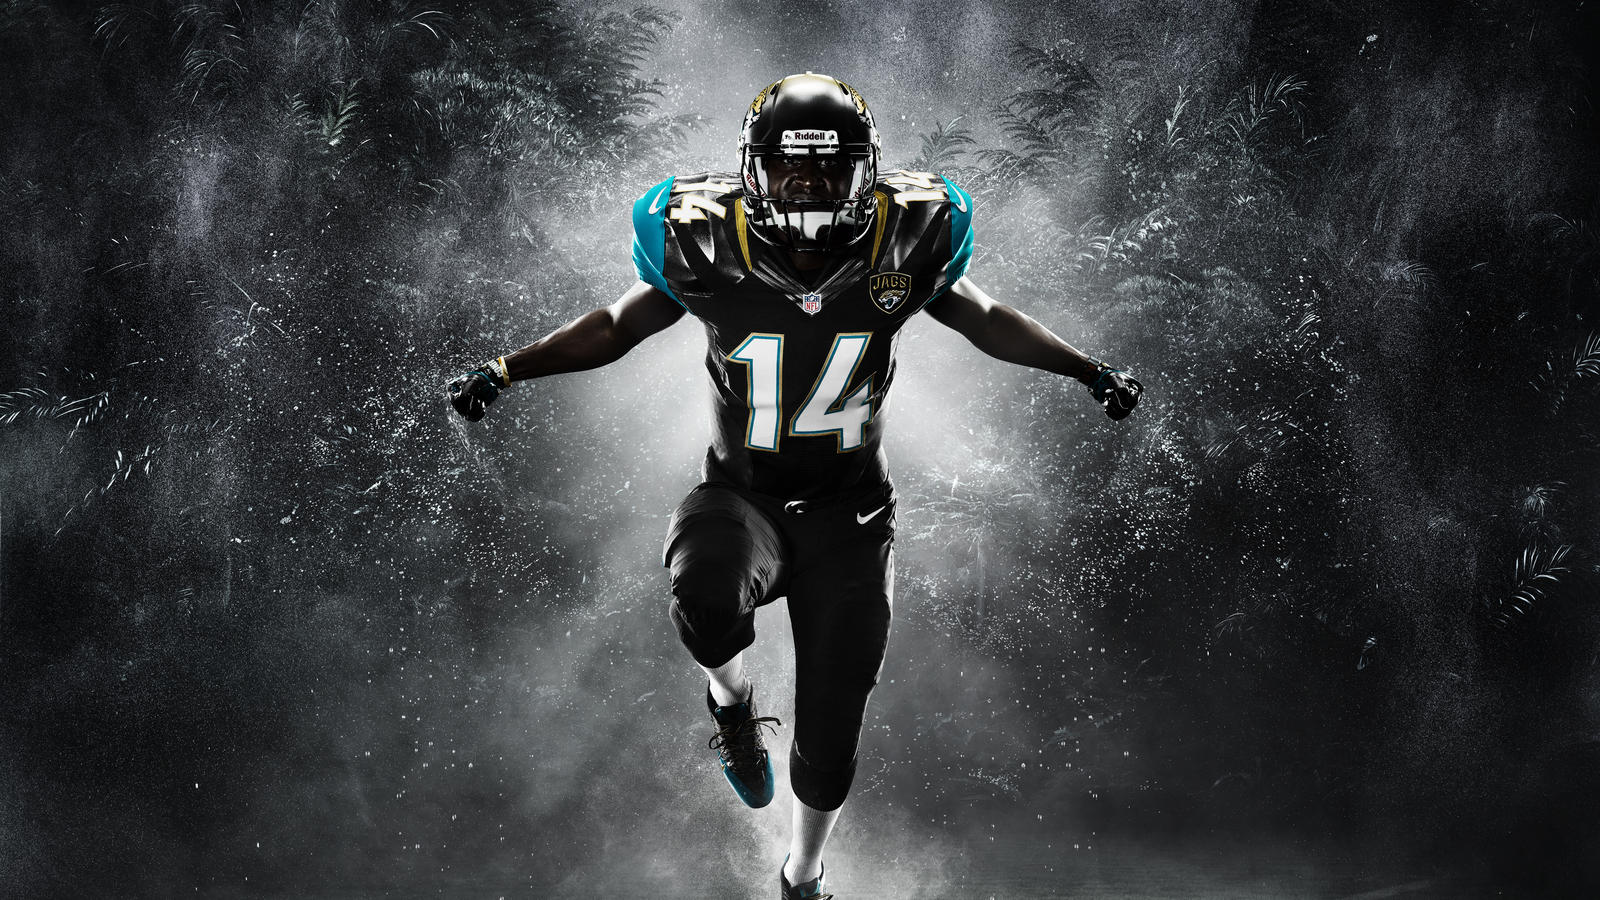 jaguars-blackmon-nfl-nike-elite-51-uniform-6